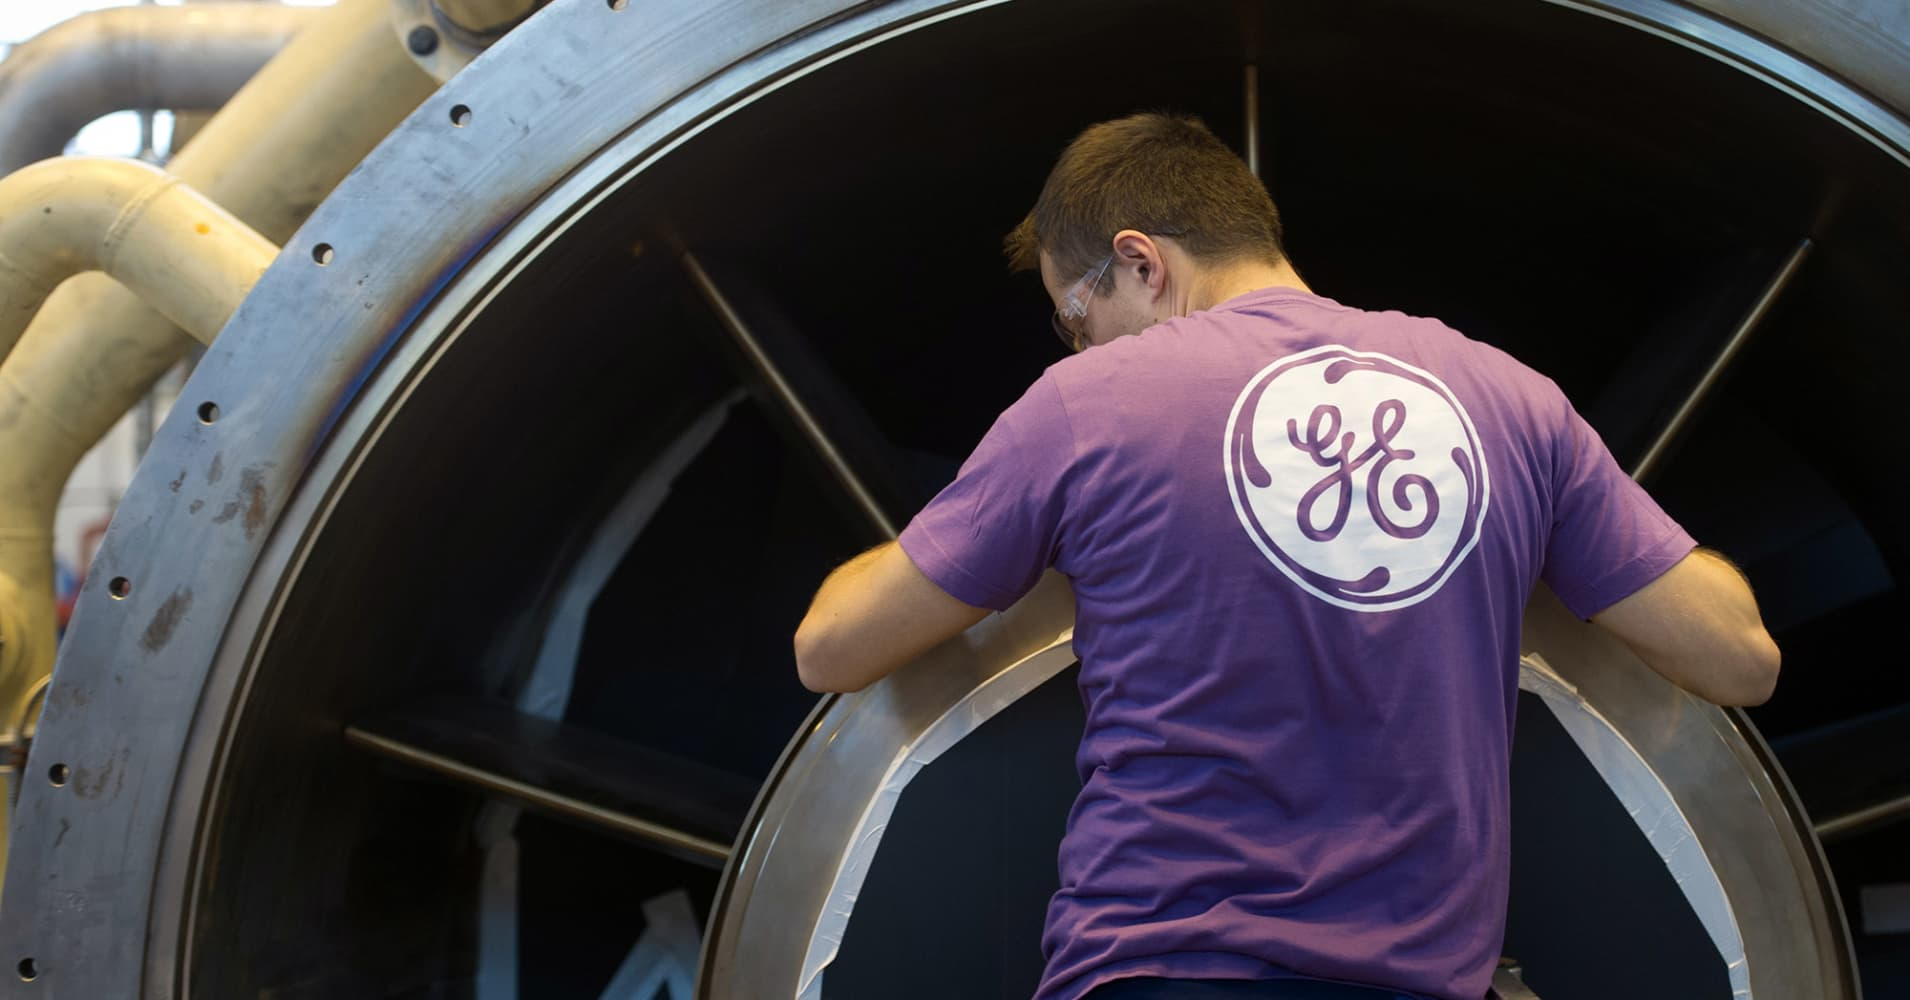 GE plunges 8% to new 9-year low after Wall Street says dividend cut to a penny may not be enough